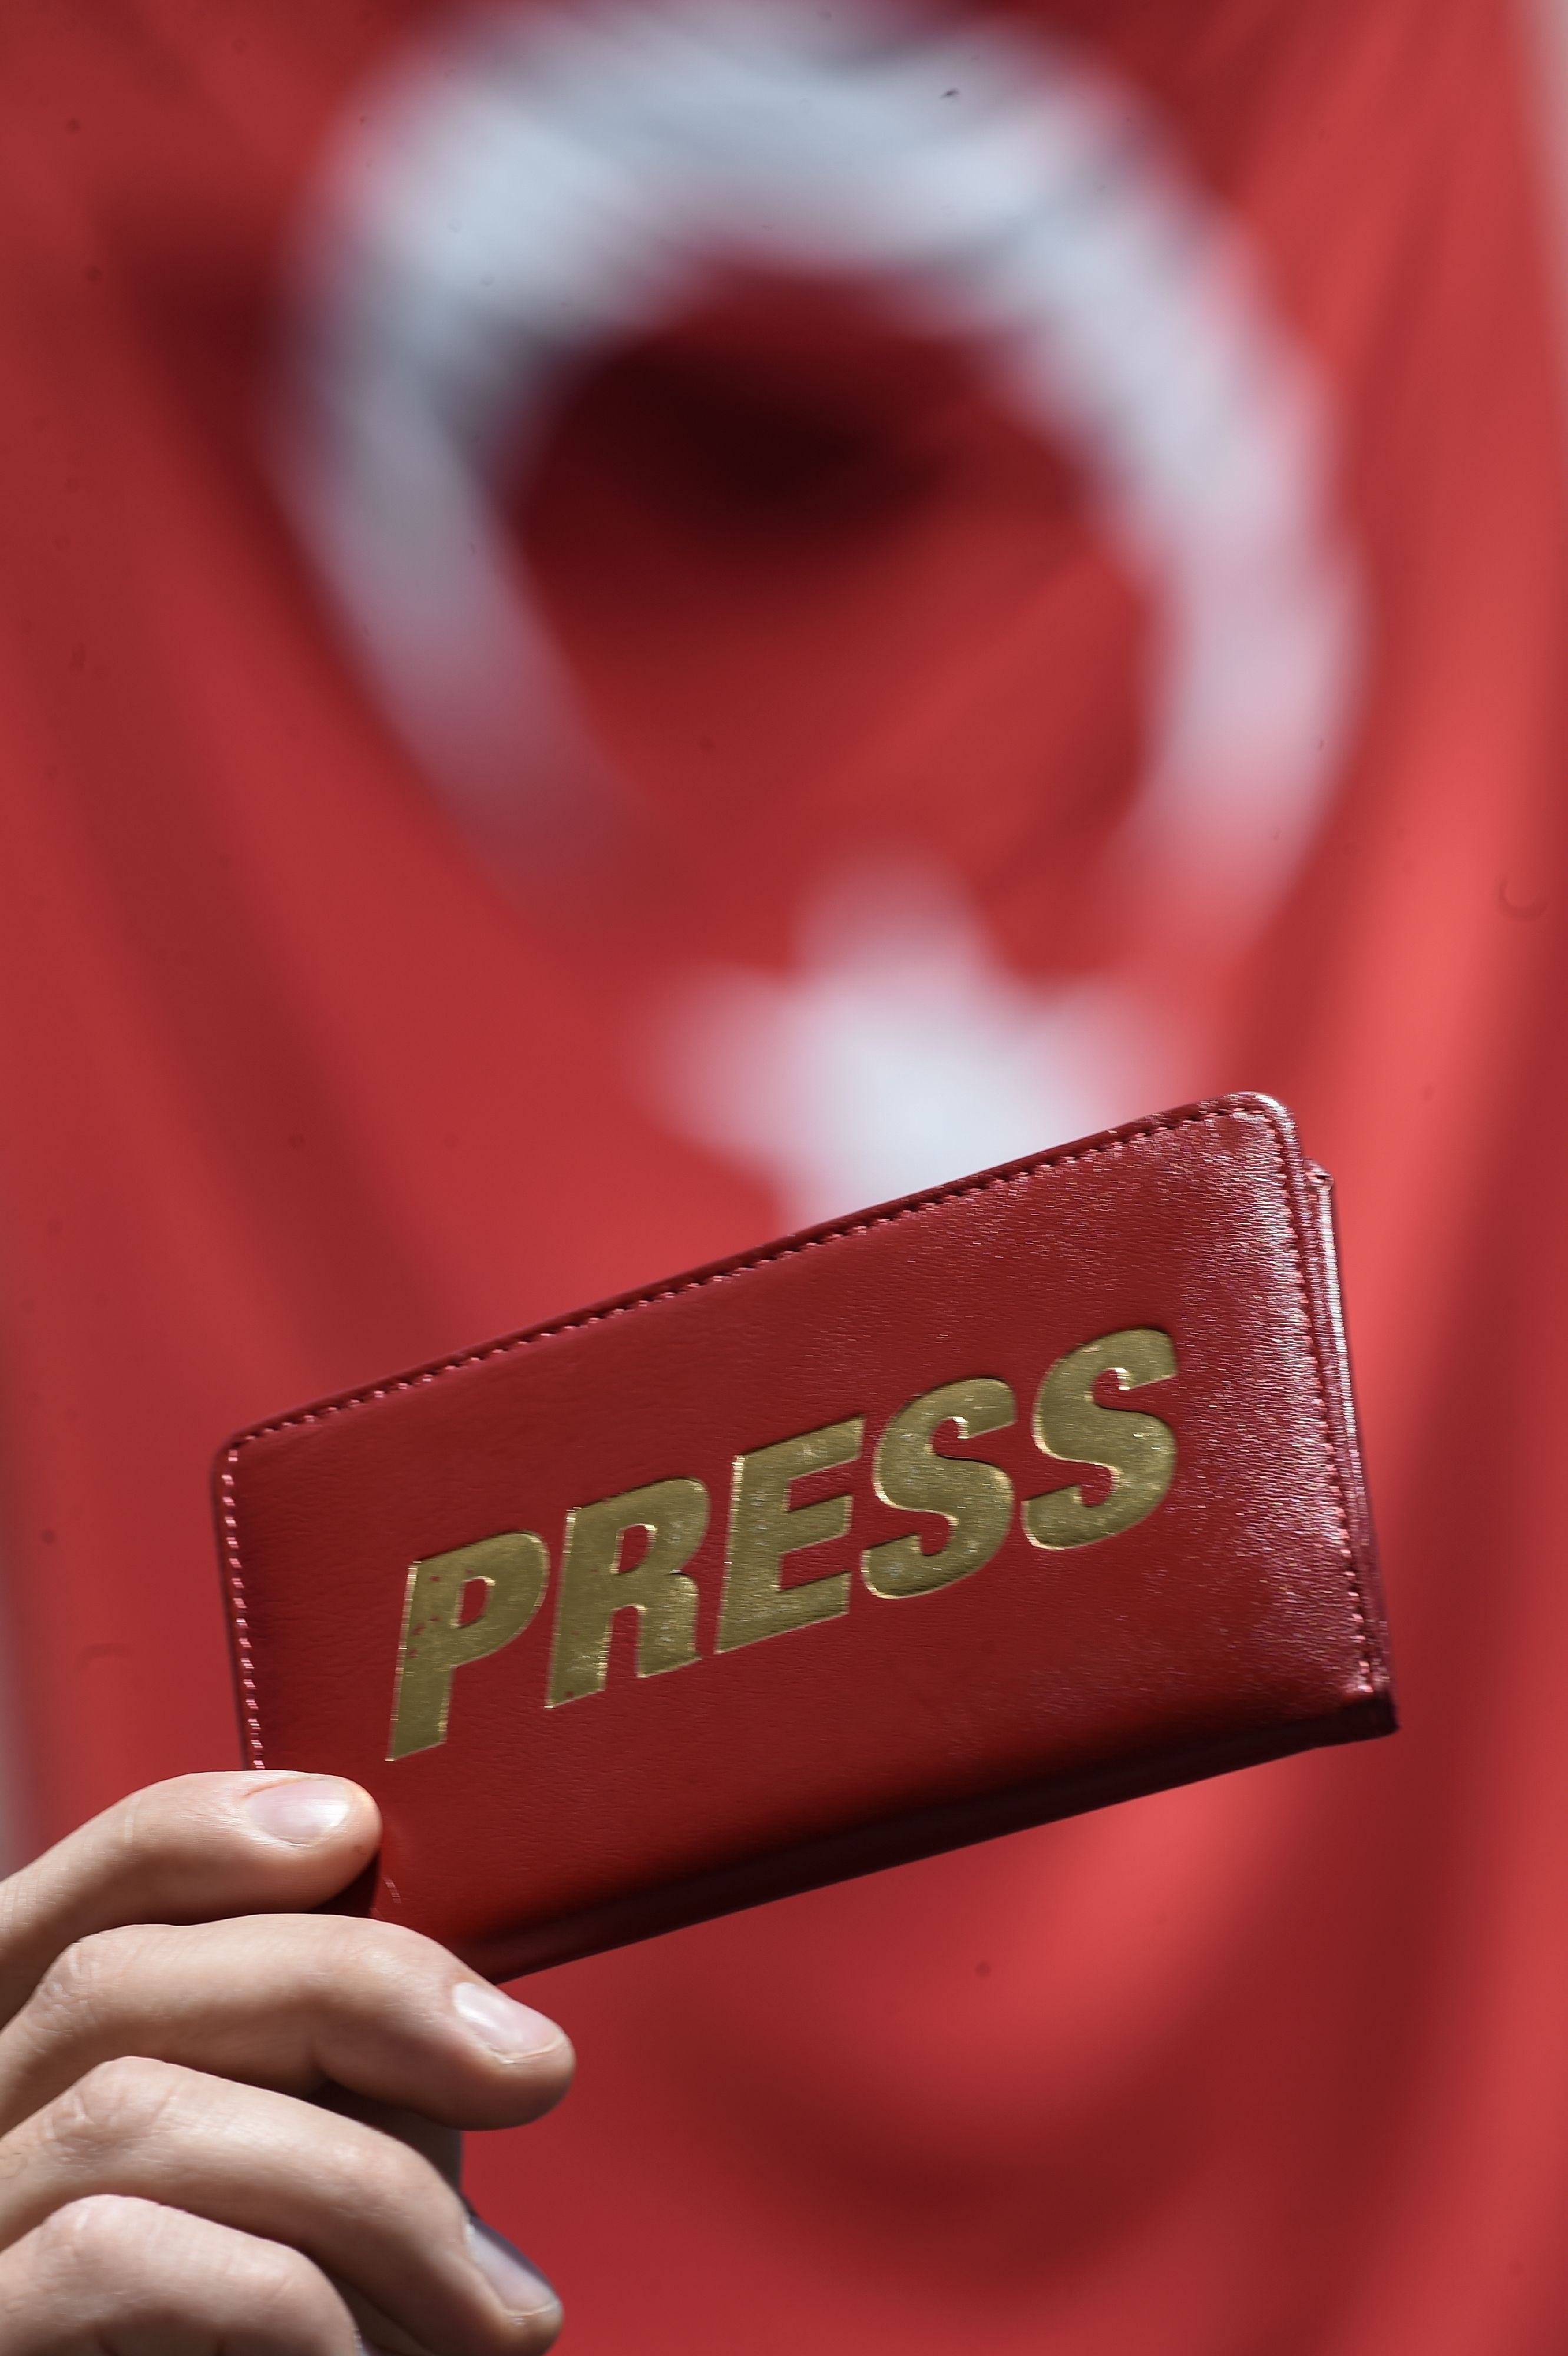 TOPSHOT - A journalist holds a press wallet during a demonstration for the World Press Freedom Day on the Istiklal avenue, in Istanbul, on May 3, 2017. According to the P24 press freedom website on April 4, 2017, there are 141 journalists behind bars in Turkey, most of whom were detained as part of the state of emergency imposed after the failed coup. / AFP PHOTO / OZAN KOSE / TT / kod 444